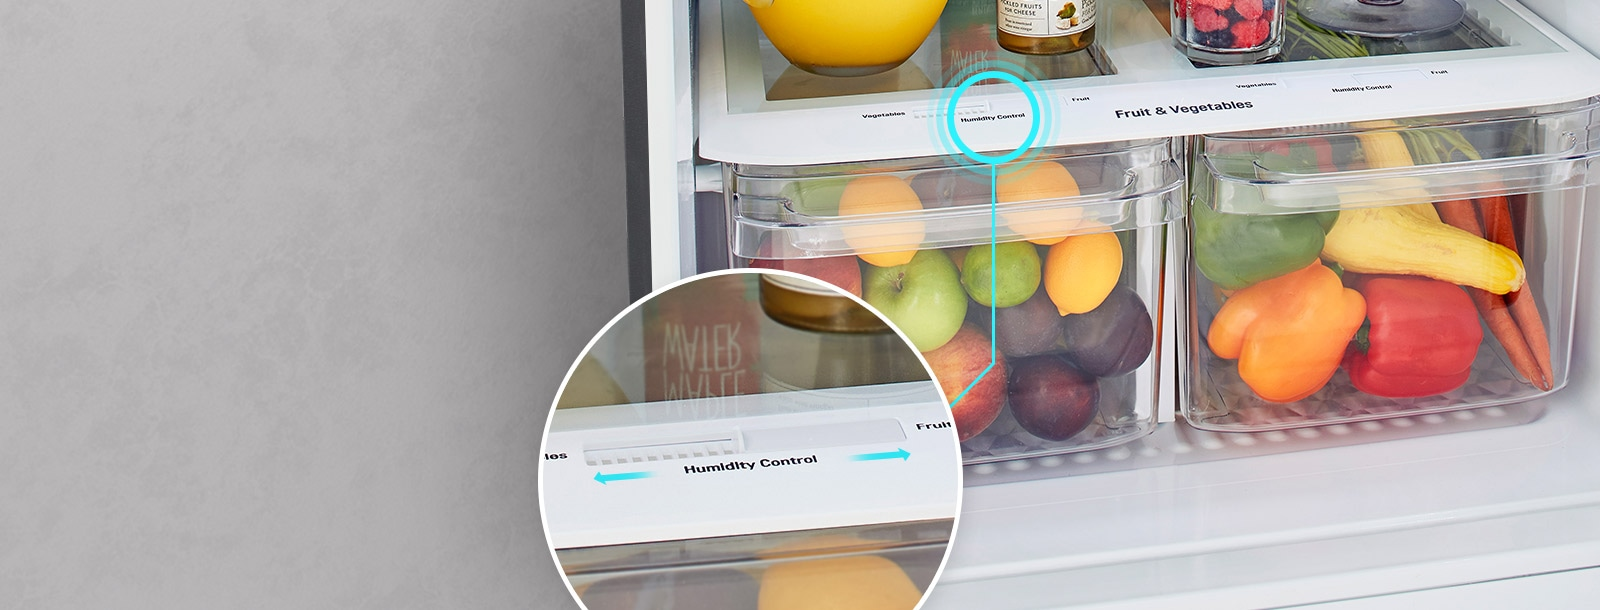 The bottom drawers of the fridge are shown filled with produce. A magnified circle shows the Humidity Control lever on the top of the drawer close up with arrows to indicate it can be changed.